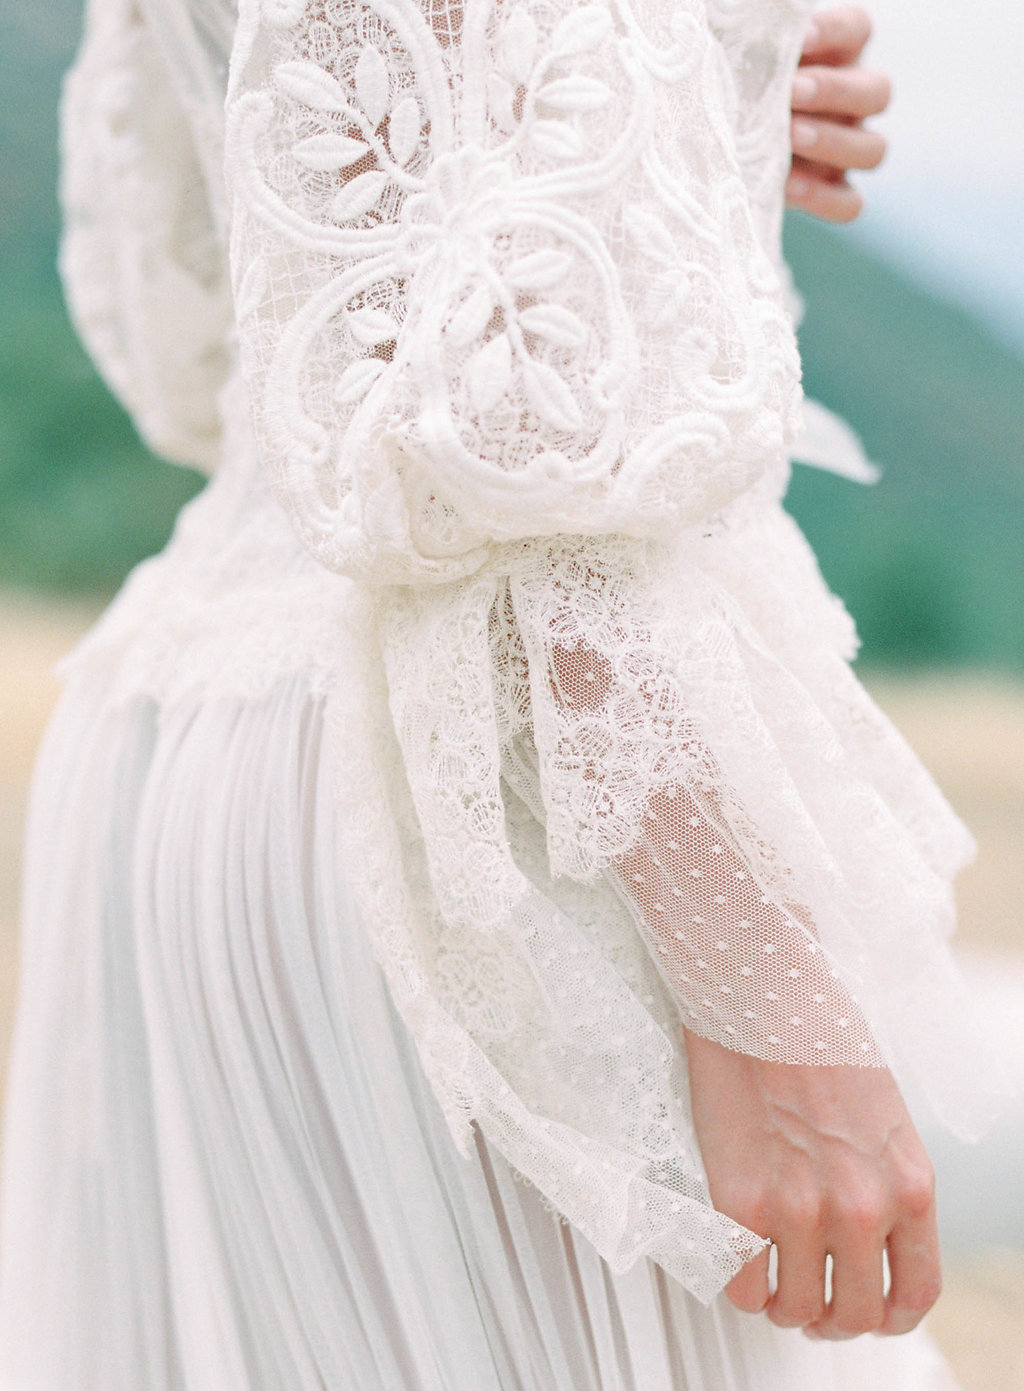 vintage lace European wedding dress details